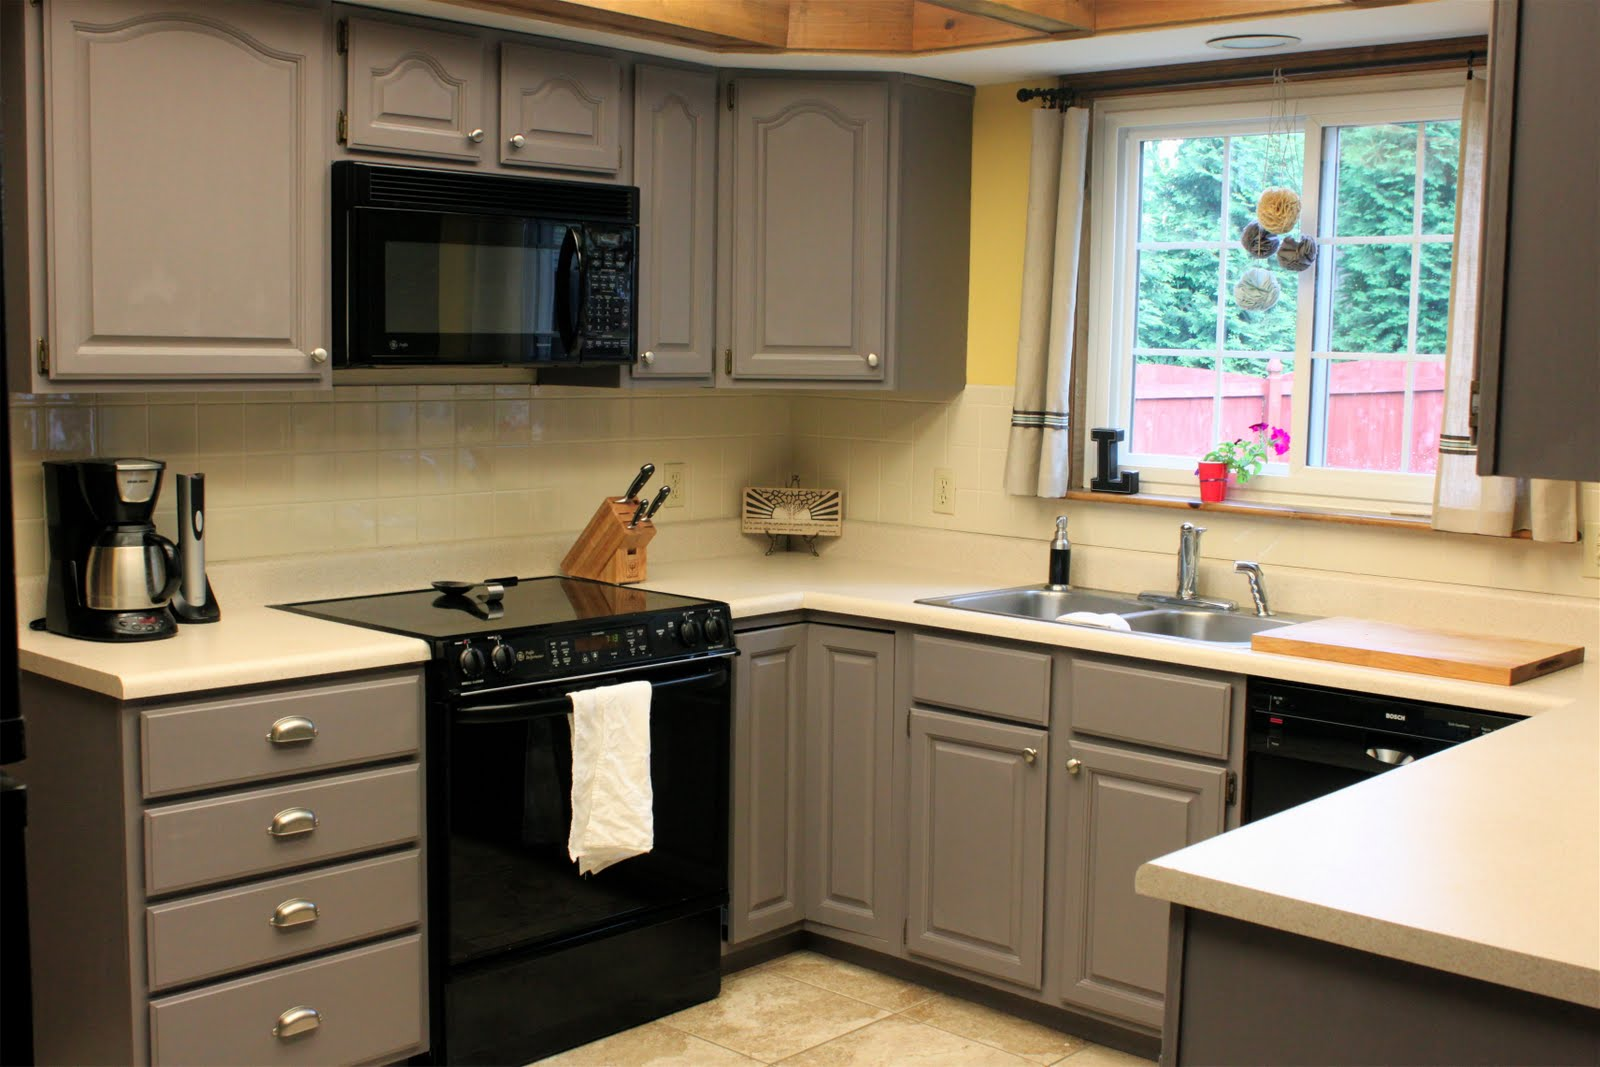 Diy Painted Black Kitchen Cabinets Diy Paint Kitchen Cabinets